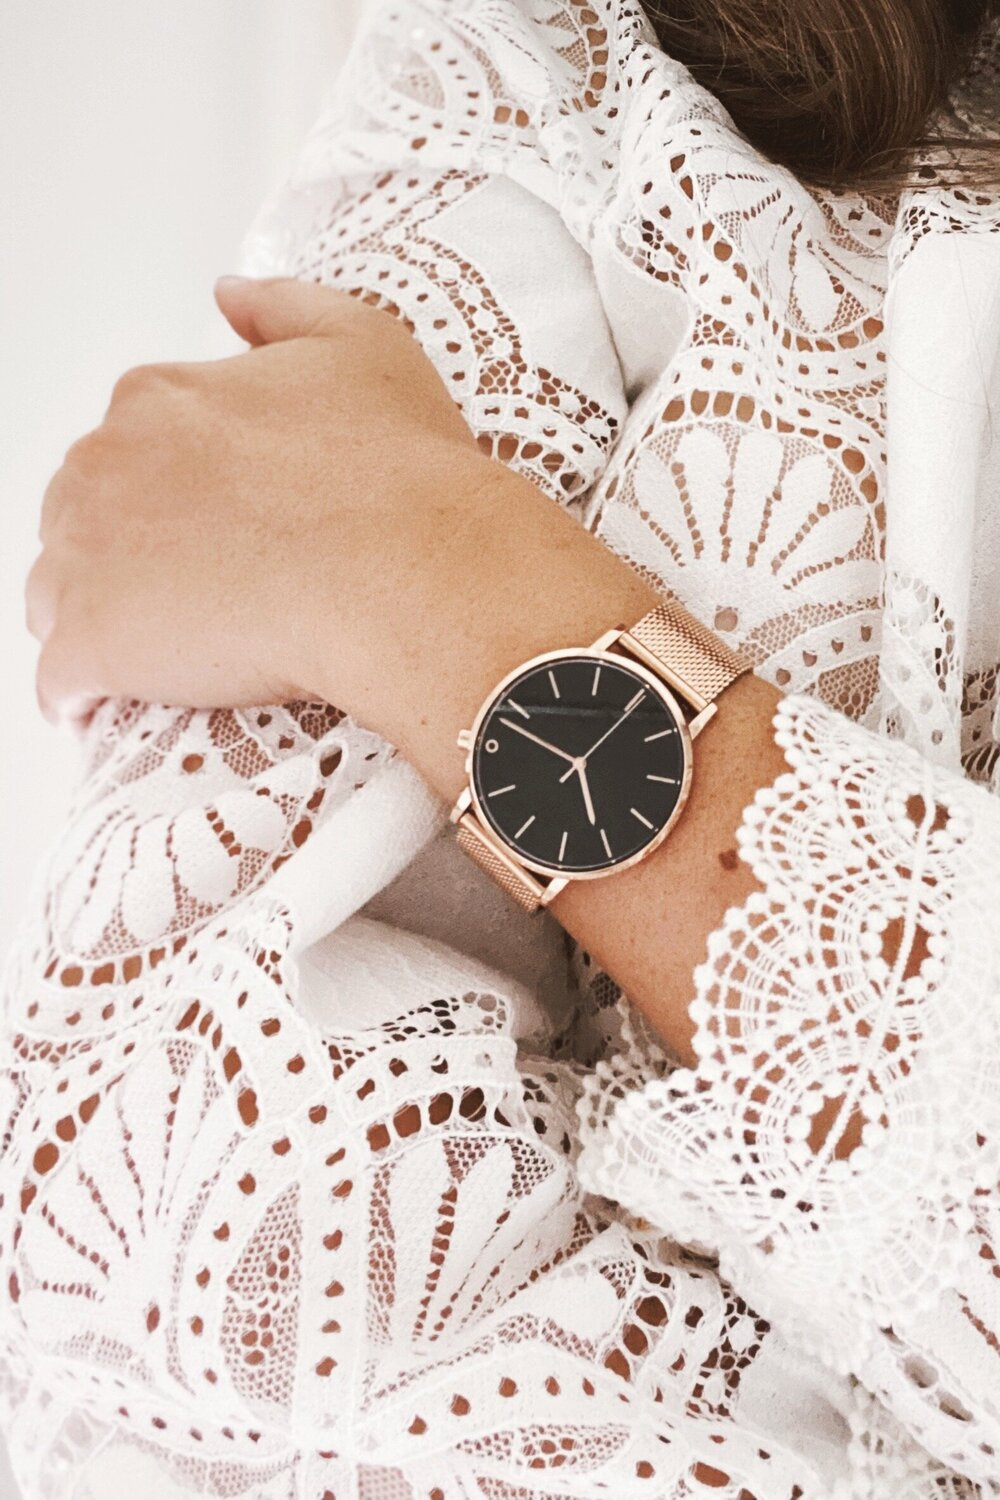 Sustainably Chic   Sustainable Fashion Blog   Sustainable Watches by 2 Degrees East   Zero Waste Rose Gold Strap   Sustainable Gifts for Her.jpg